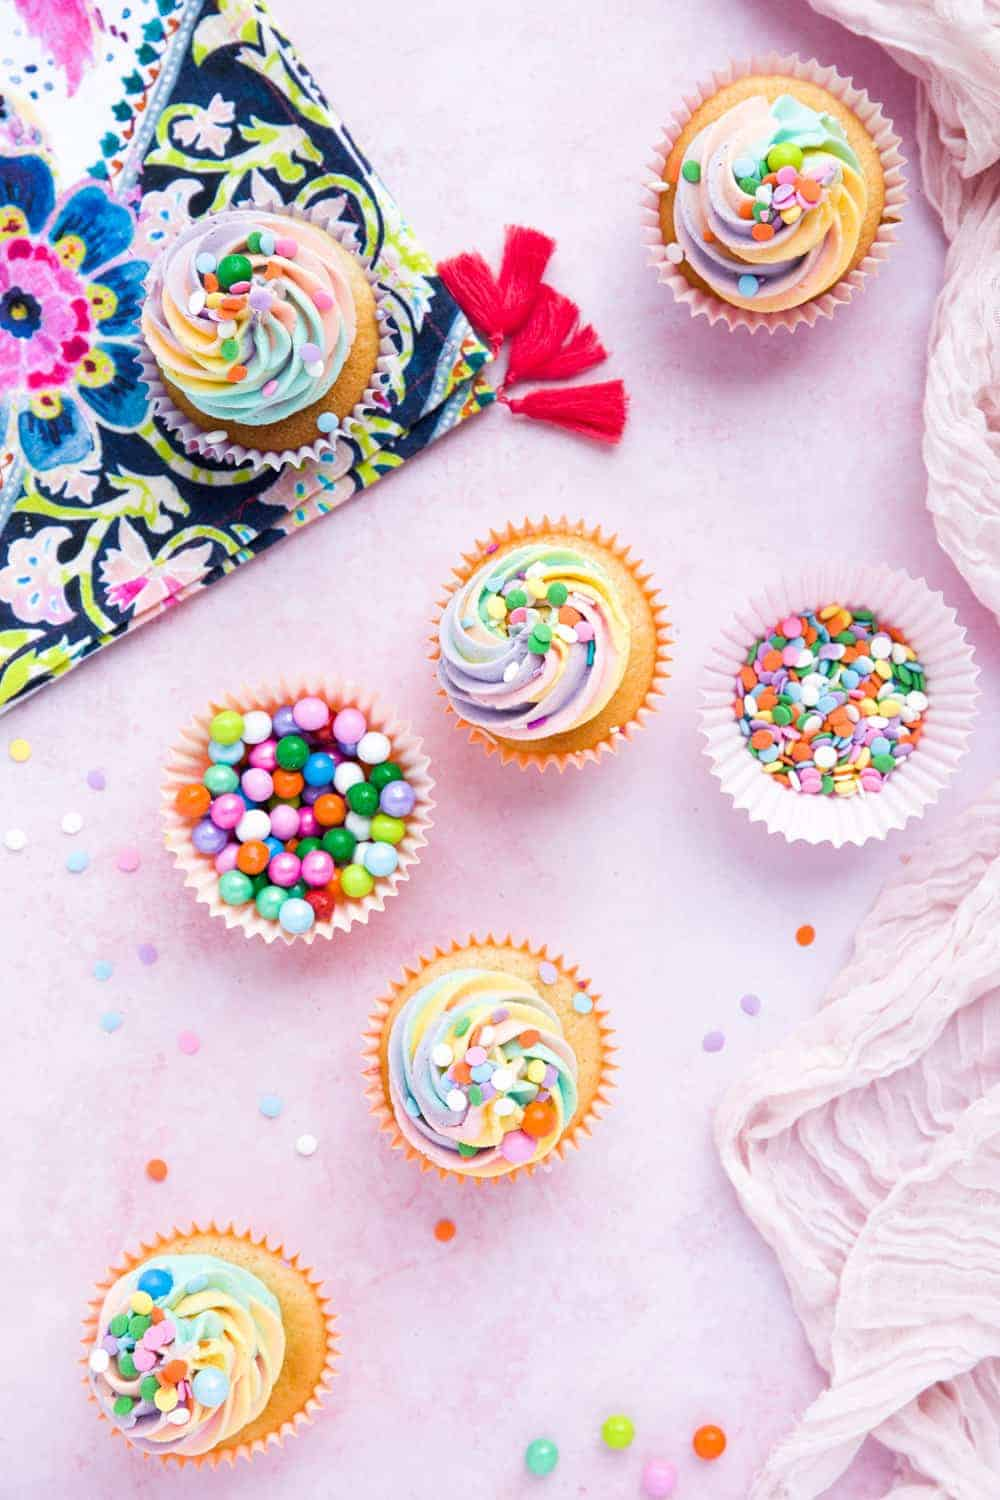 Overhead shot of cupcakes with rainbow coloured icing. There is a cupcake liner filled with round colourful sprinkles and a brightly coloured napkin.